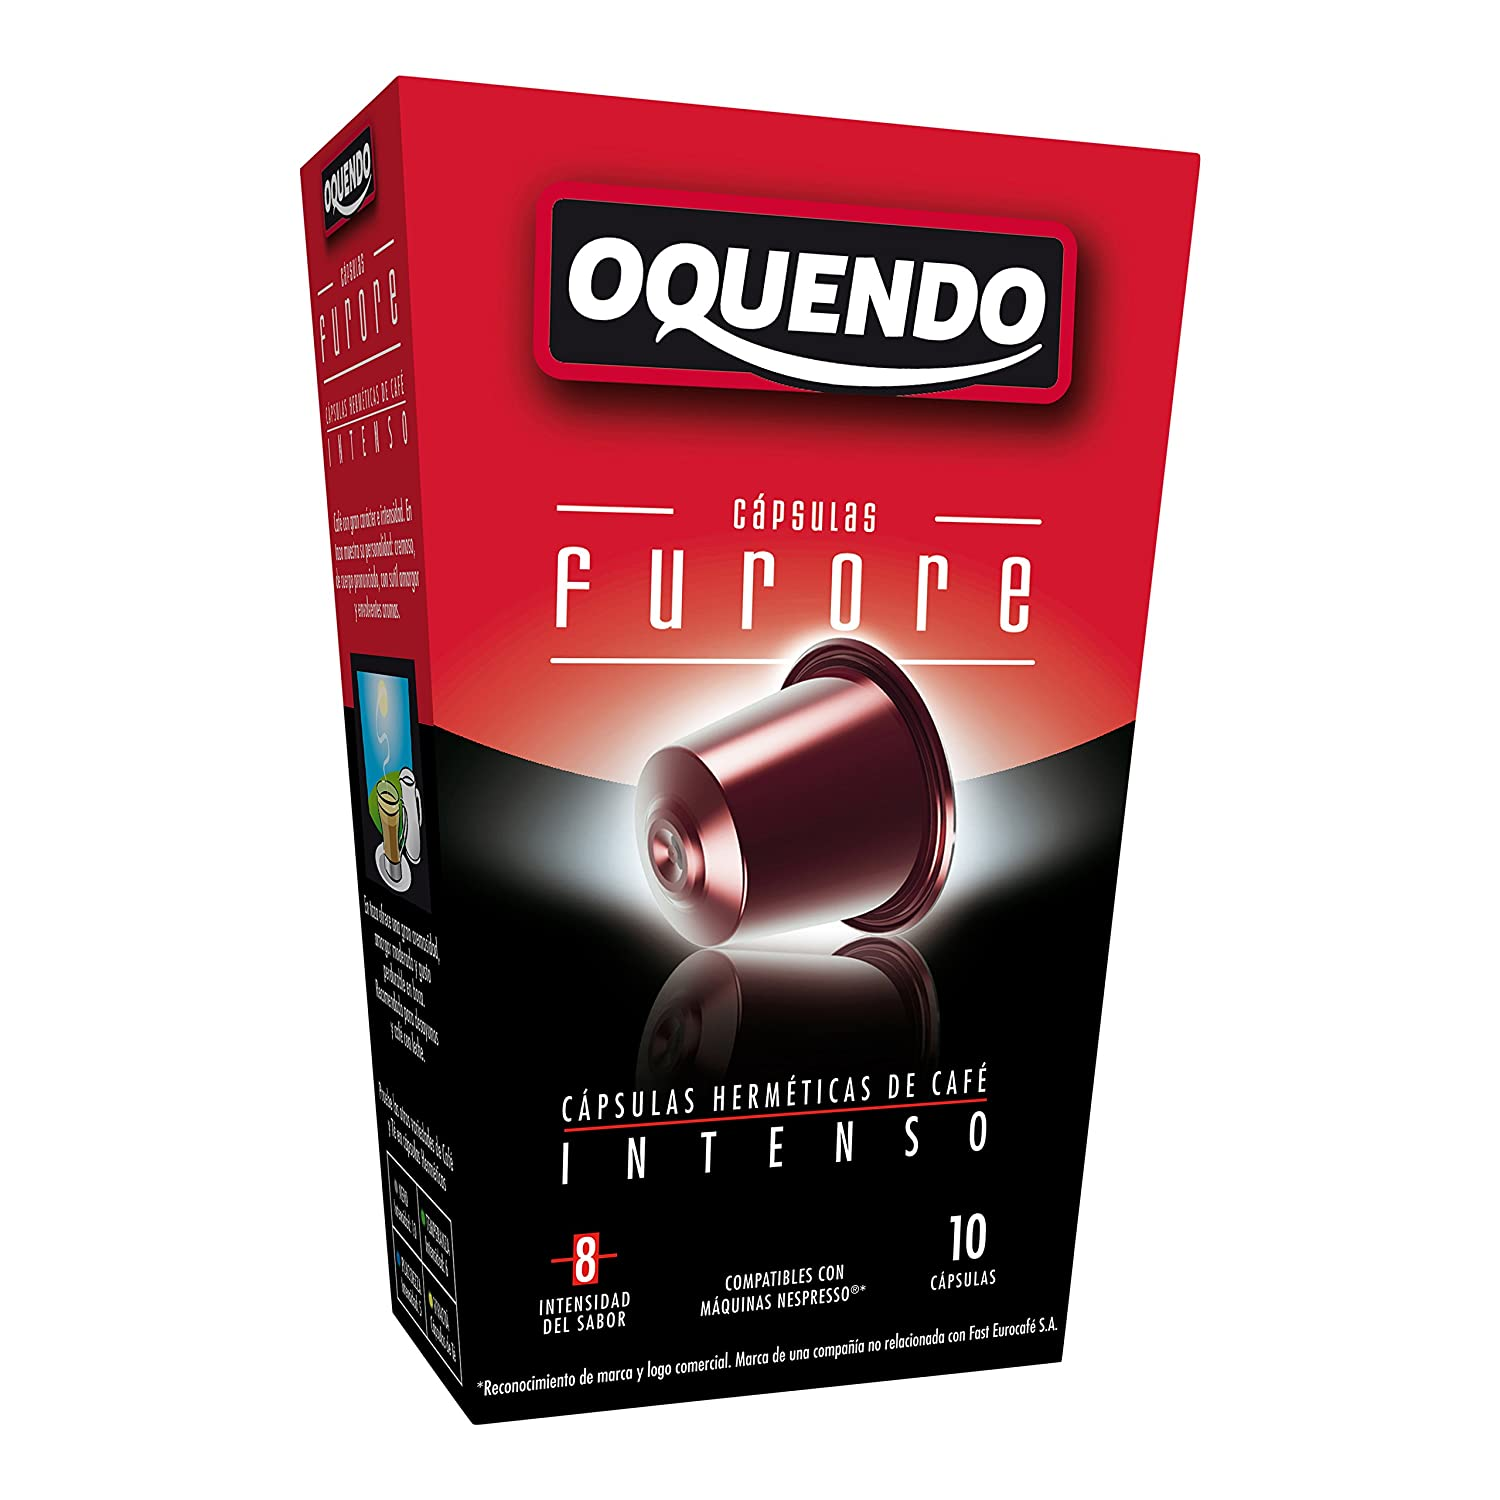 80 Cafés Oquendo Nespresso Compatible Coffee Capsules – (NERO) Premium Quality Nespresso coffee - 8 Boxes 10 capsules in each box - 80 cups - 60 Day ...